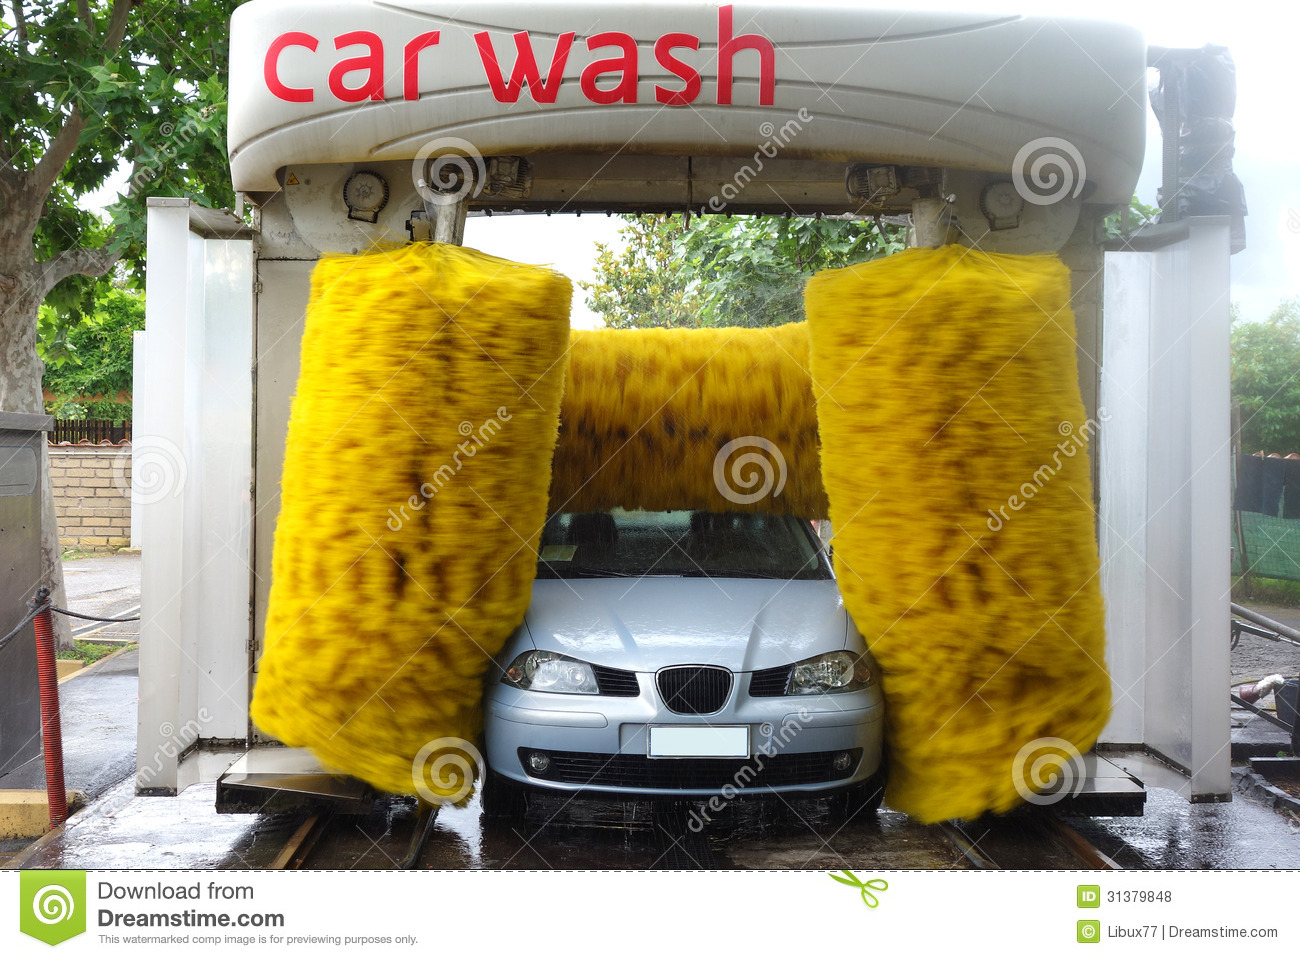 Car wash business plan malaysia airline